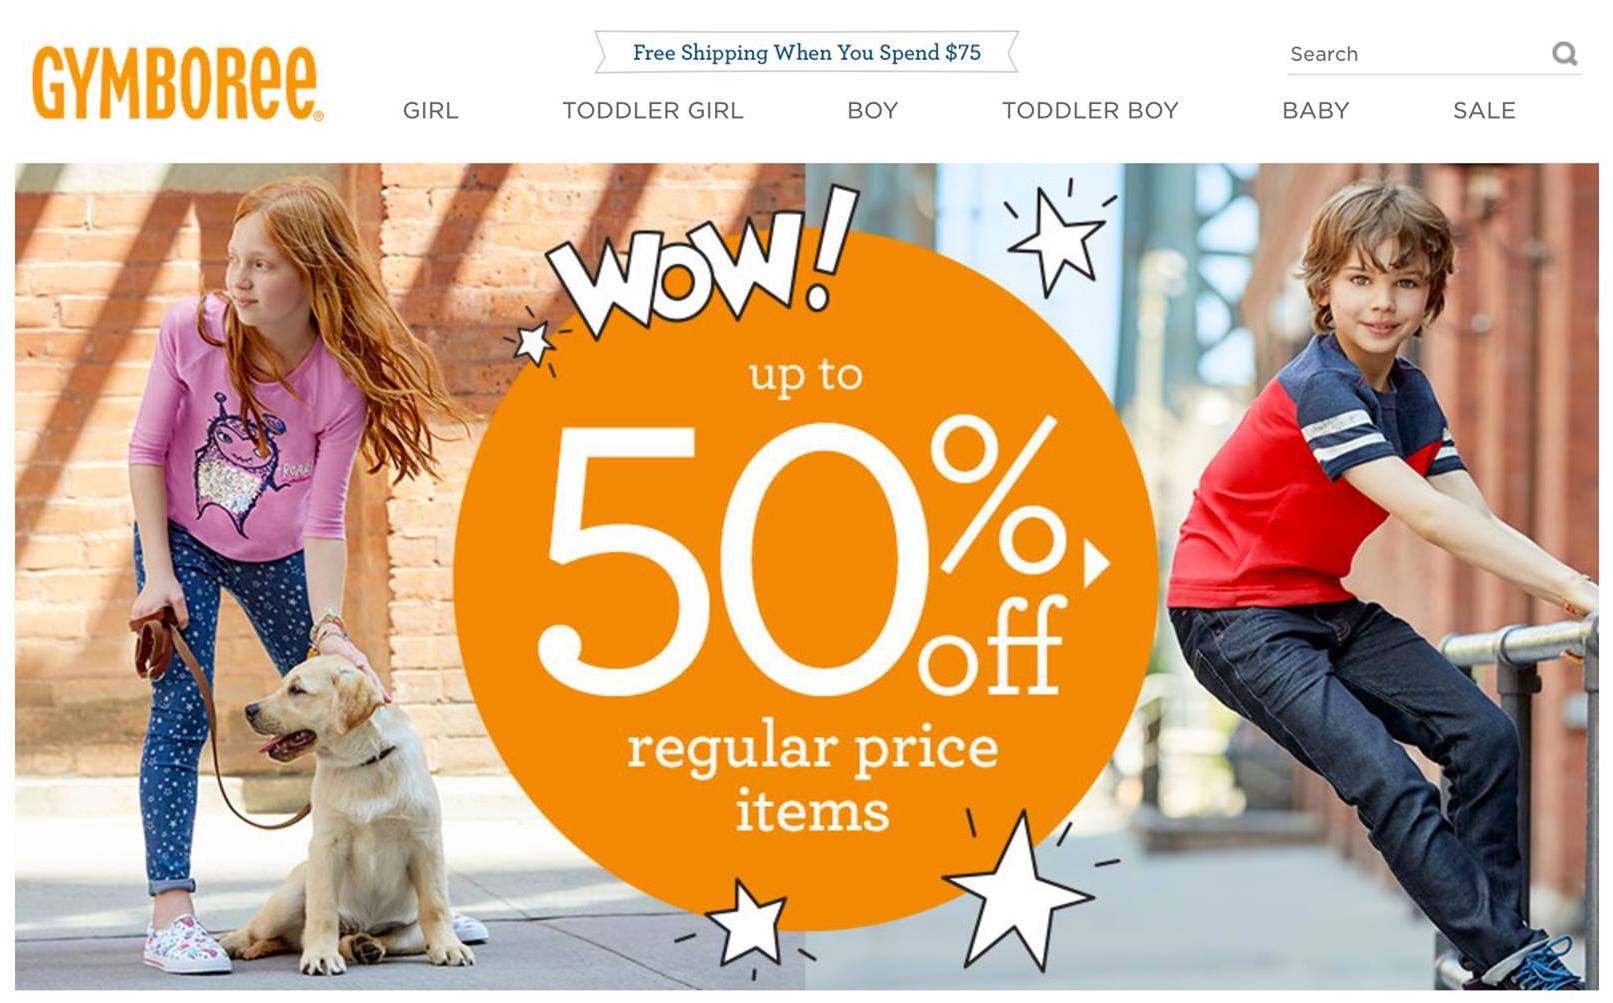 Otto modeling for Gymboree!